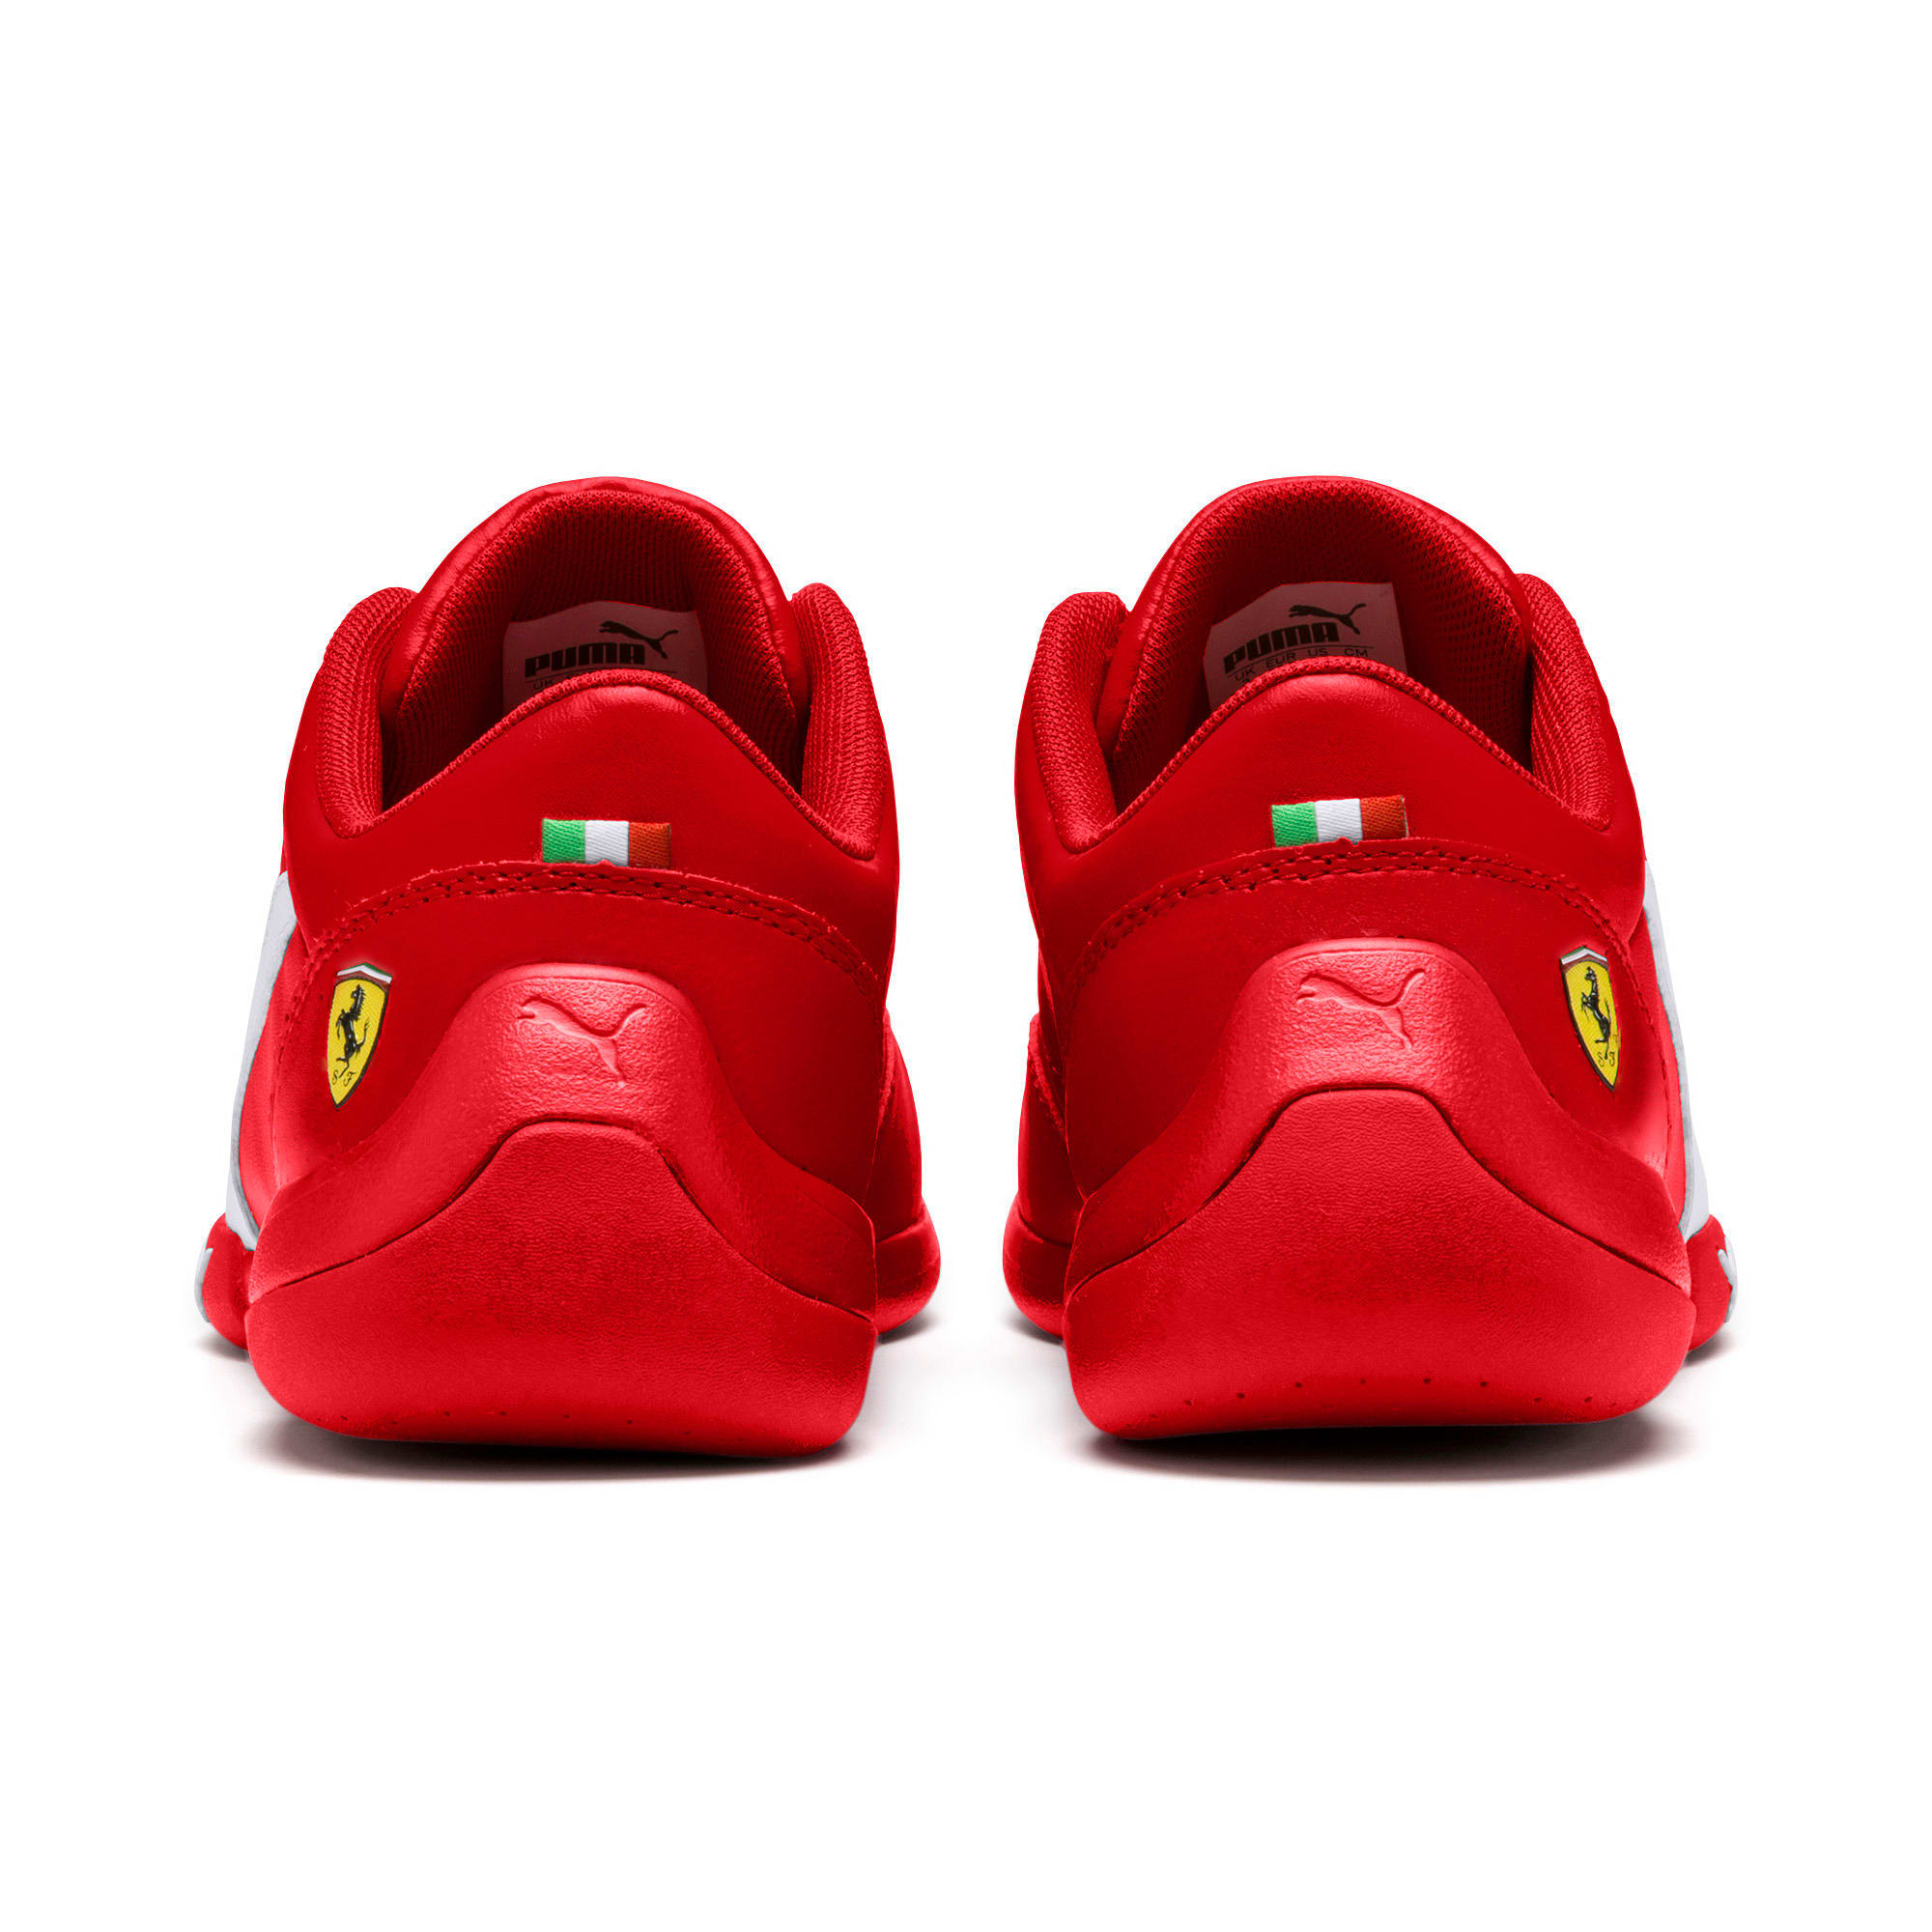 Thumbnail 3 of Ferrari Kart Cat III Youth Trainers, Rosso Corsa-Wht-Rosso Corsa, medium-IND